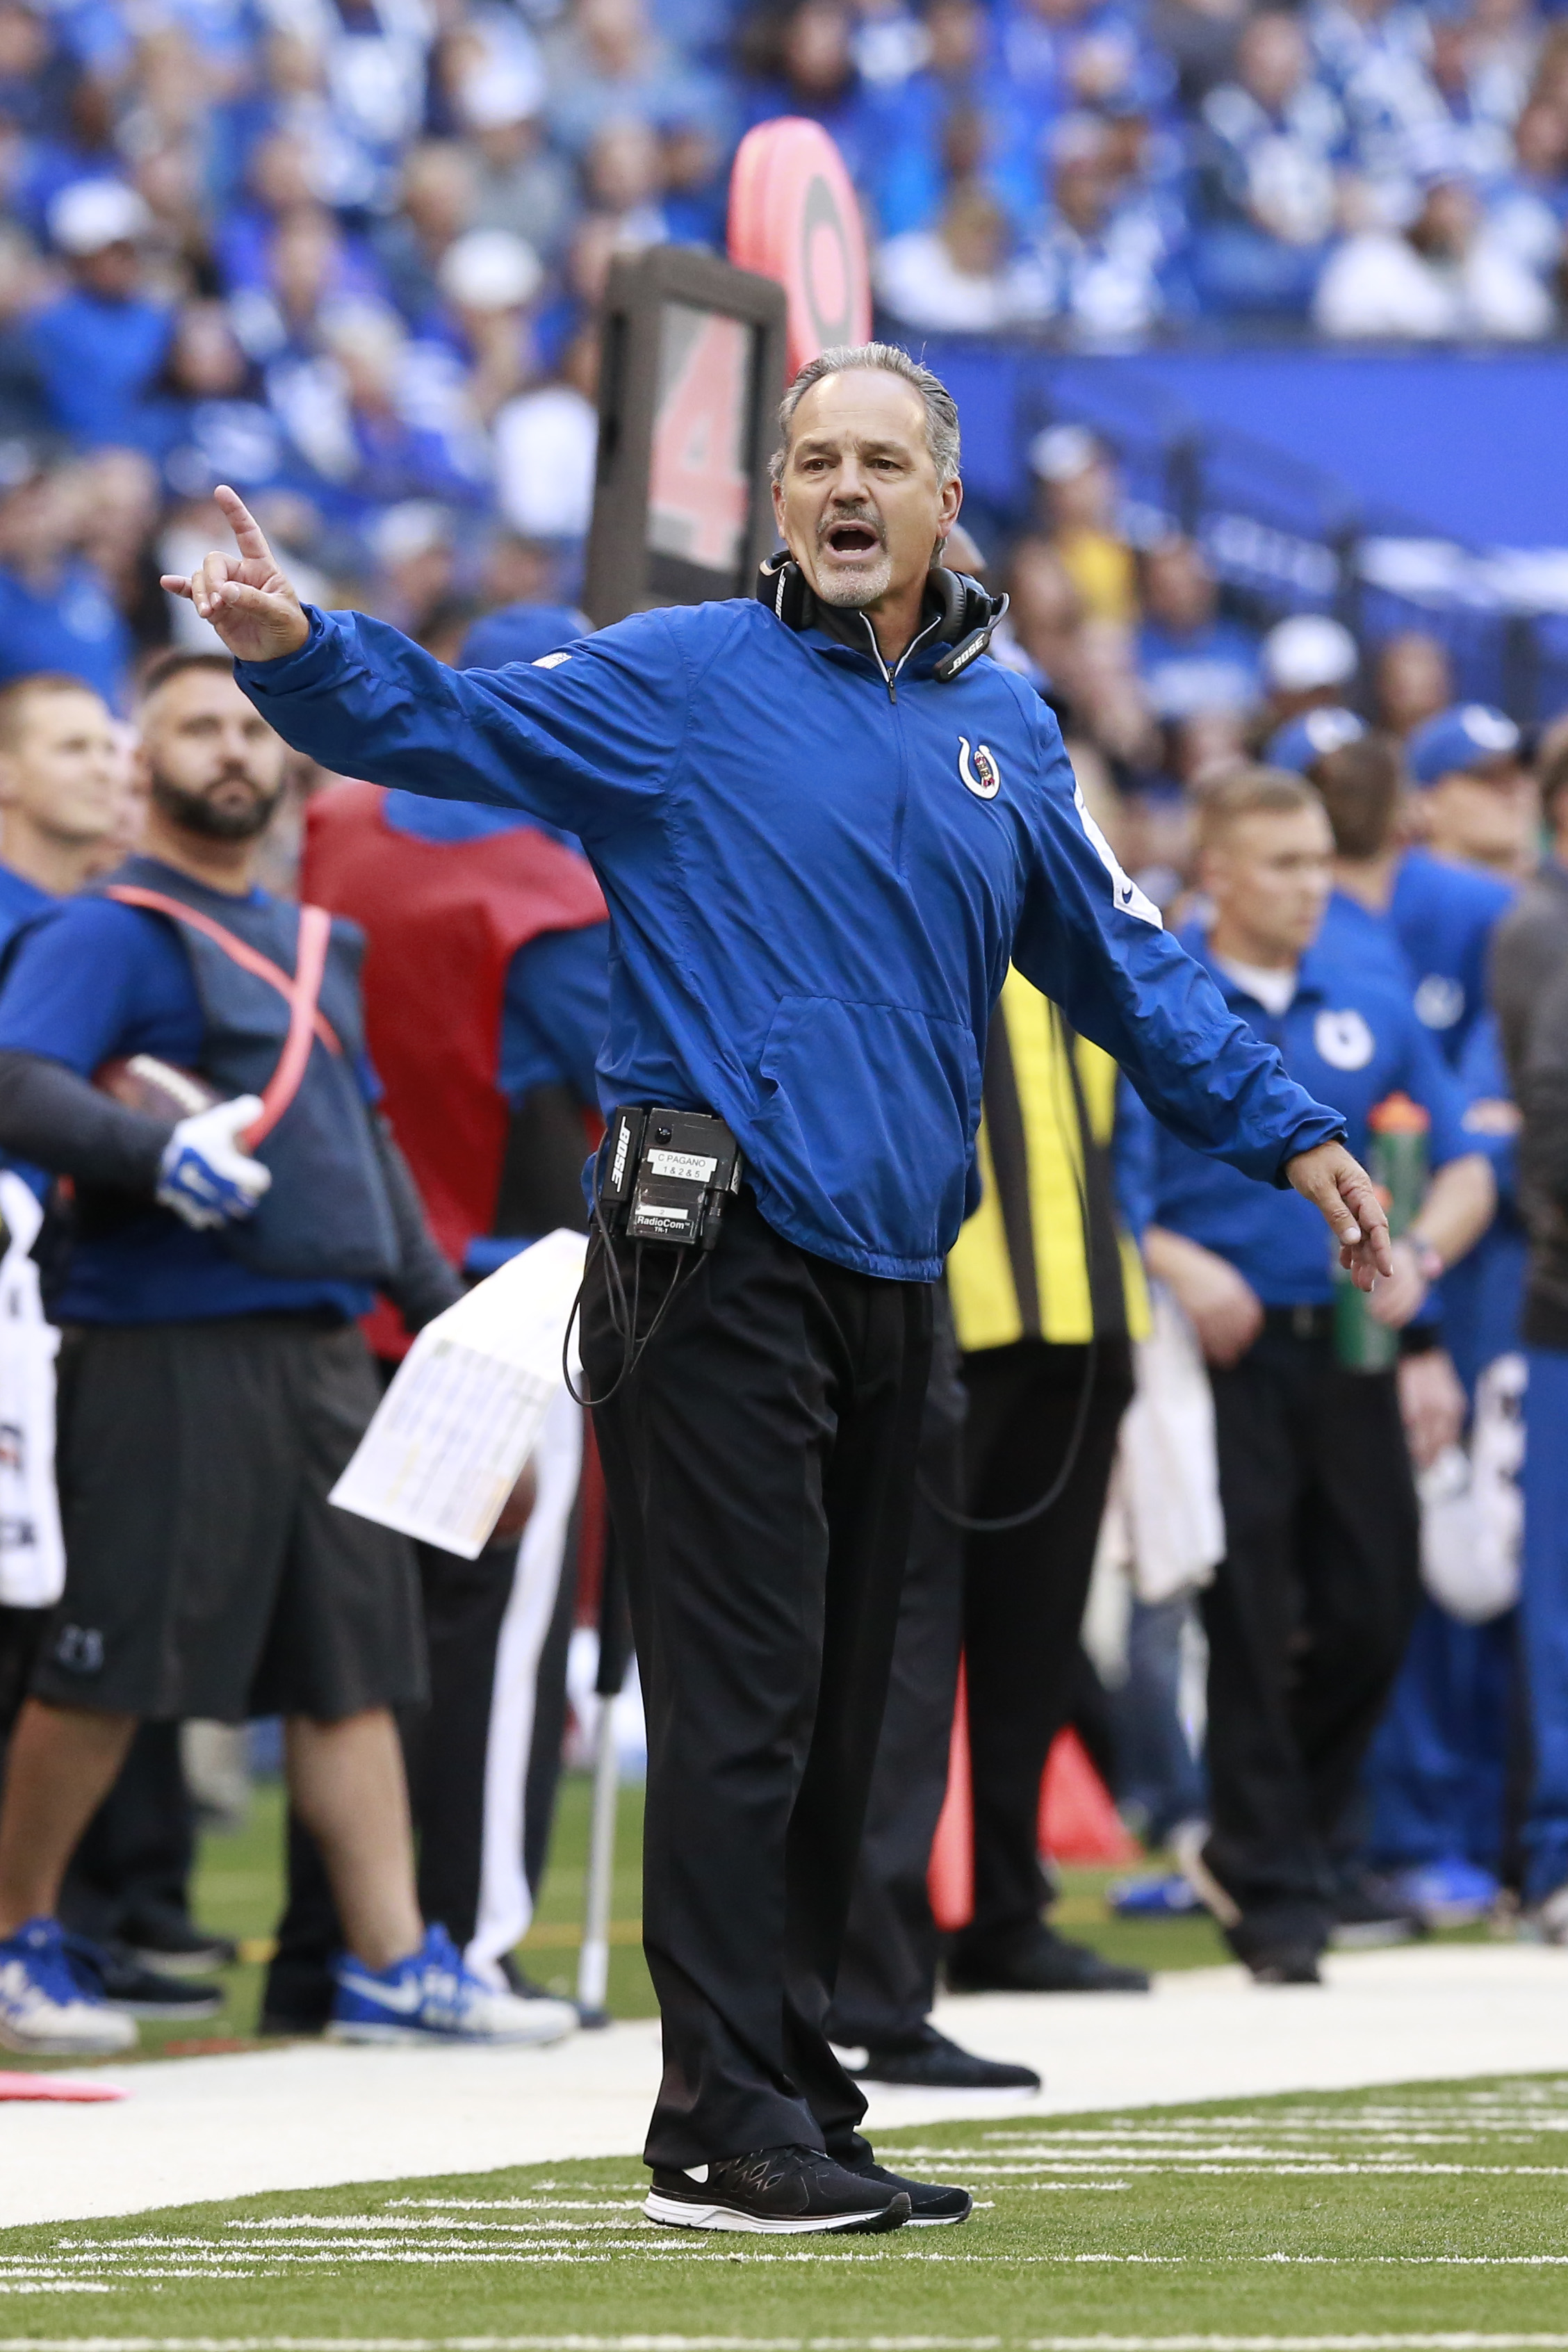 Indianapolis Colts head coach Chuck Pagano yells from the sideline in the second half of an NFL football game against the New Orleans Saints in Indianapolis, Sunday, Oct. 25, 2015. (AP Photo/R Brent Smith)